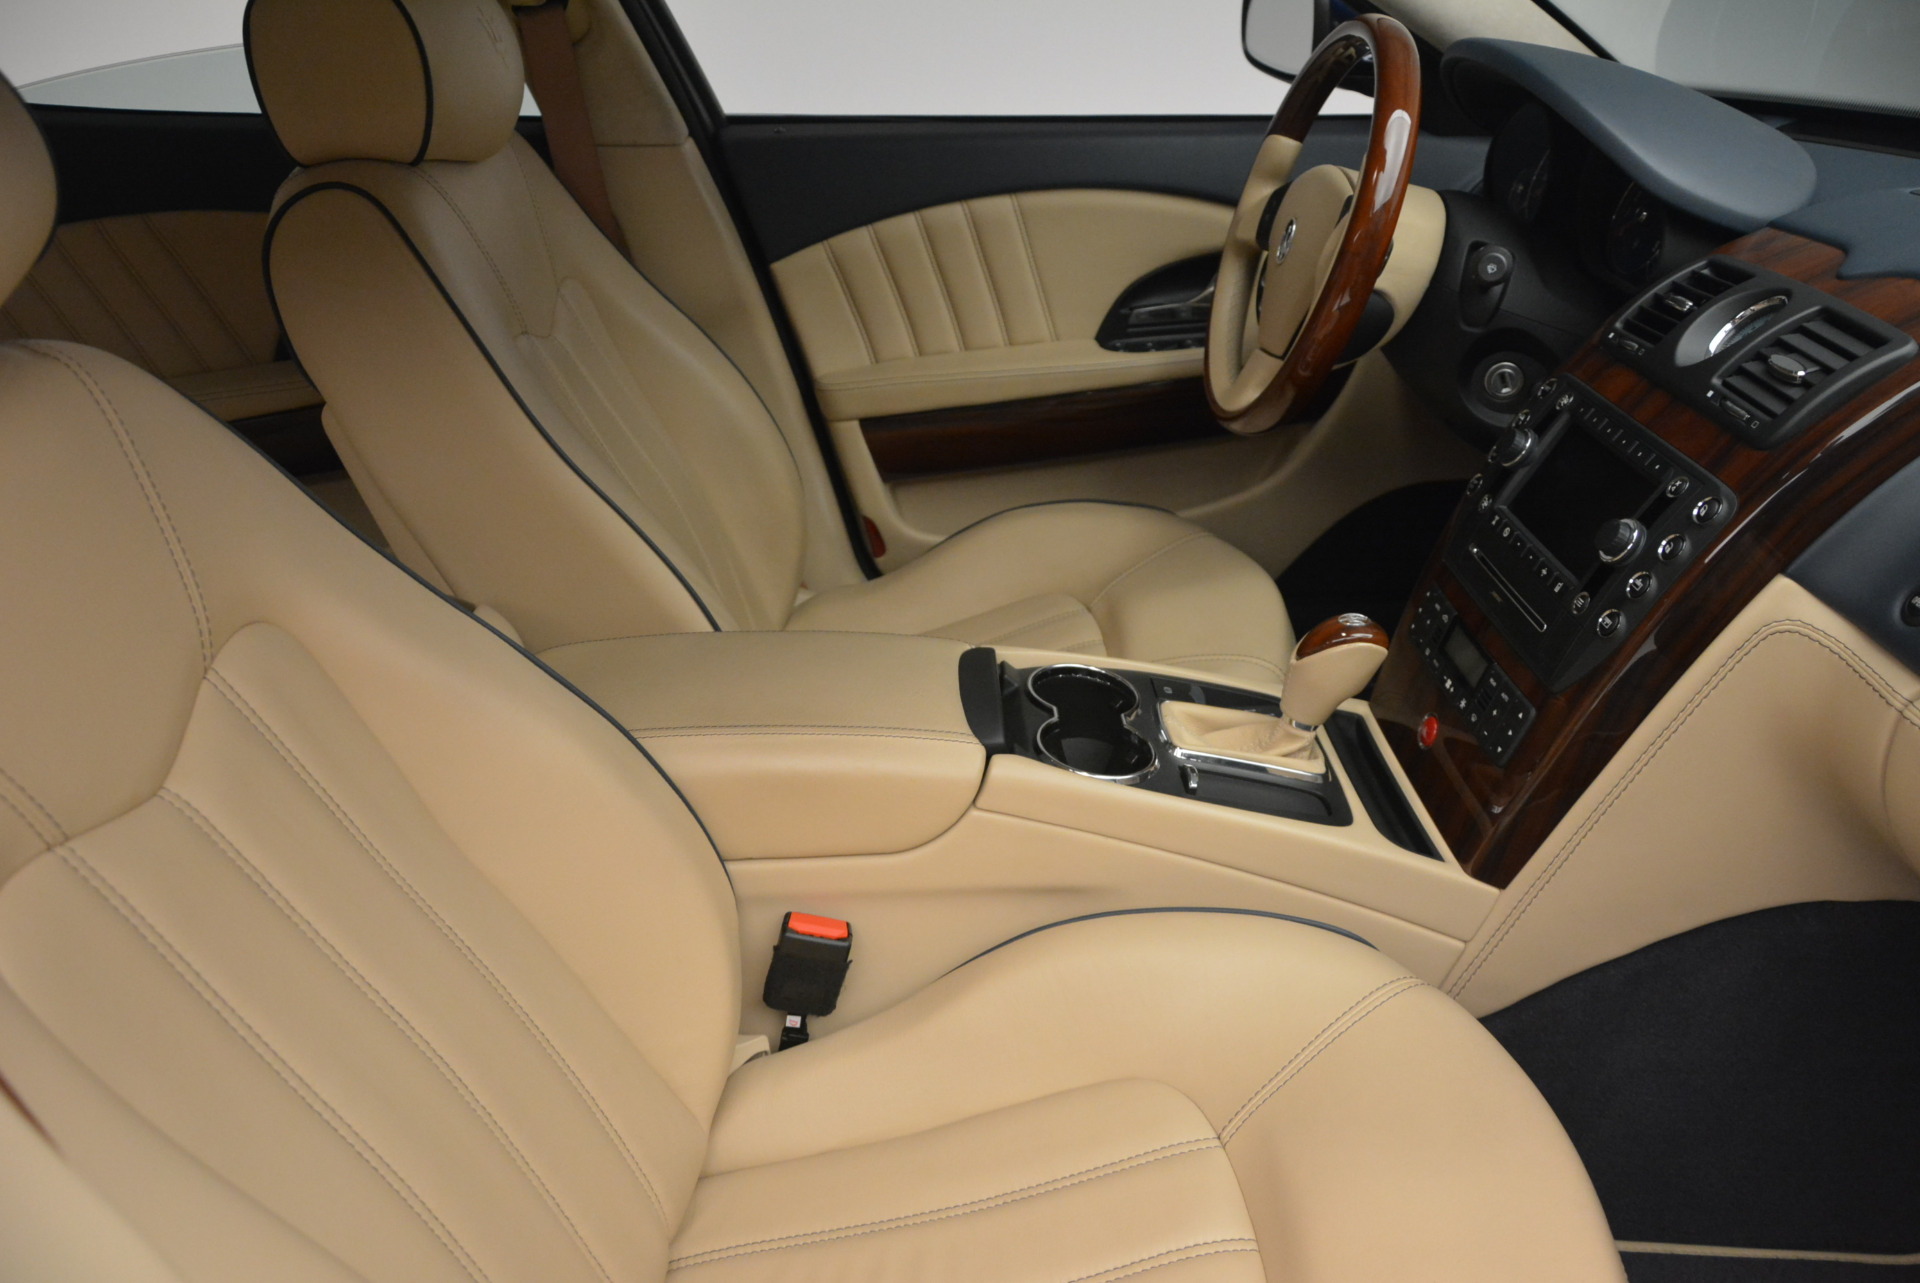 Used 2010 Maserati Quattroporte S For Sale In Westport, CT 795_p18